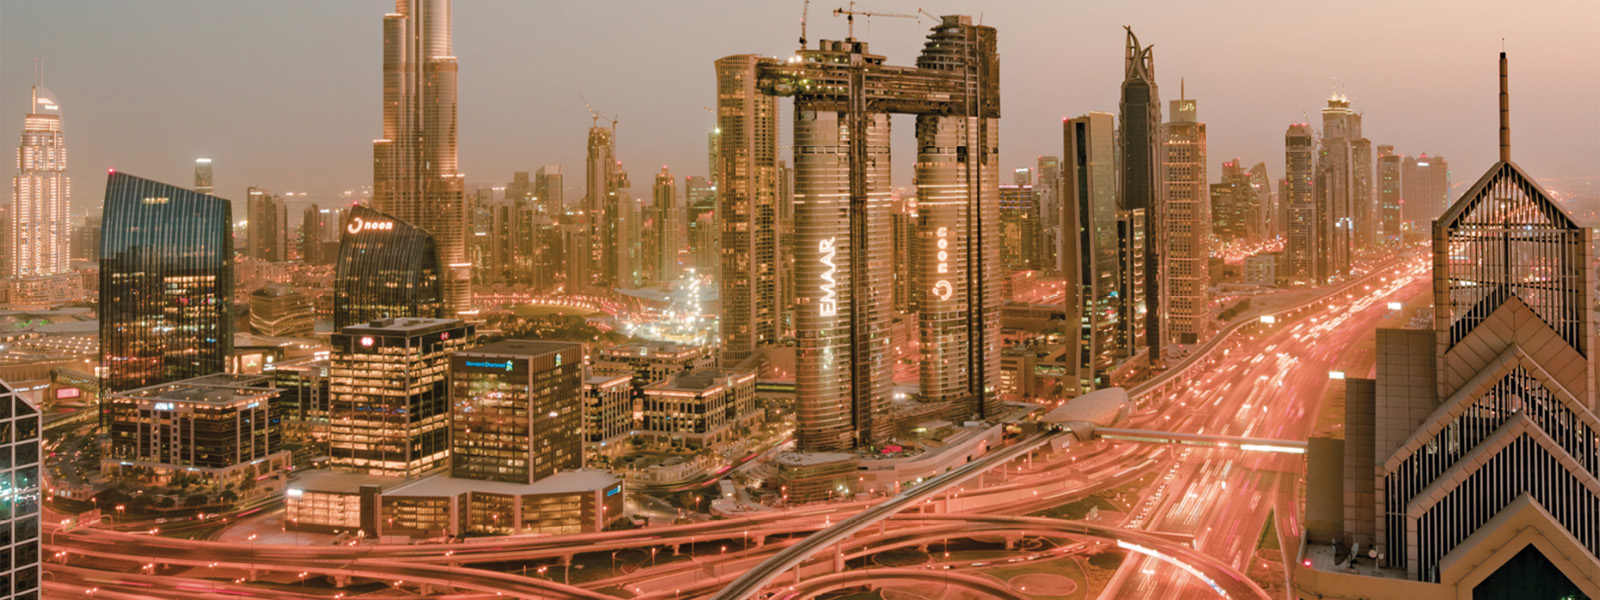 Dubai peripheries expansion